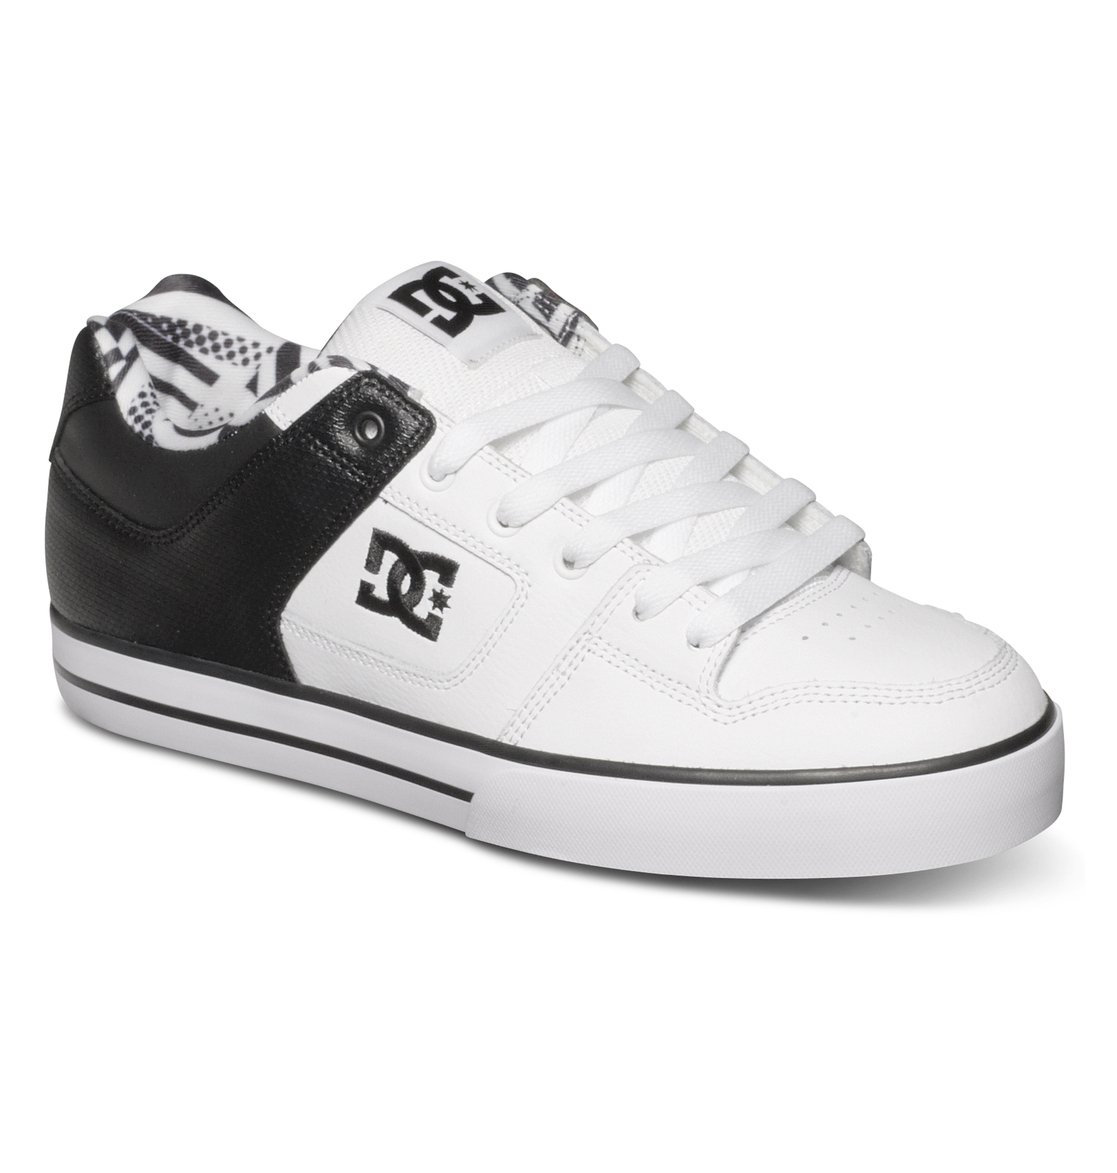 dc shoes s se shoes black white white xkww ebay